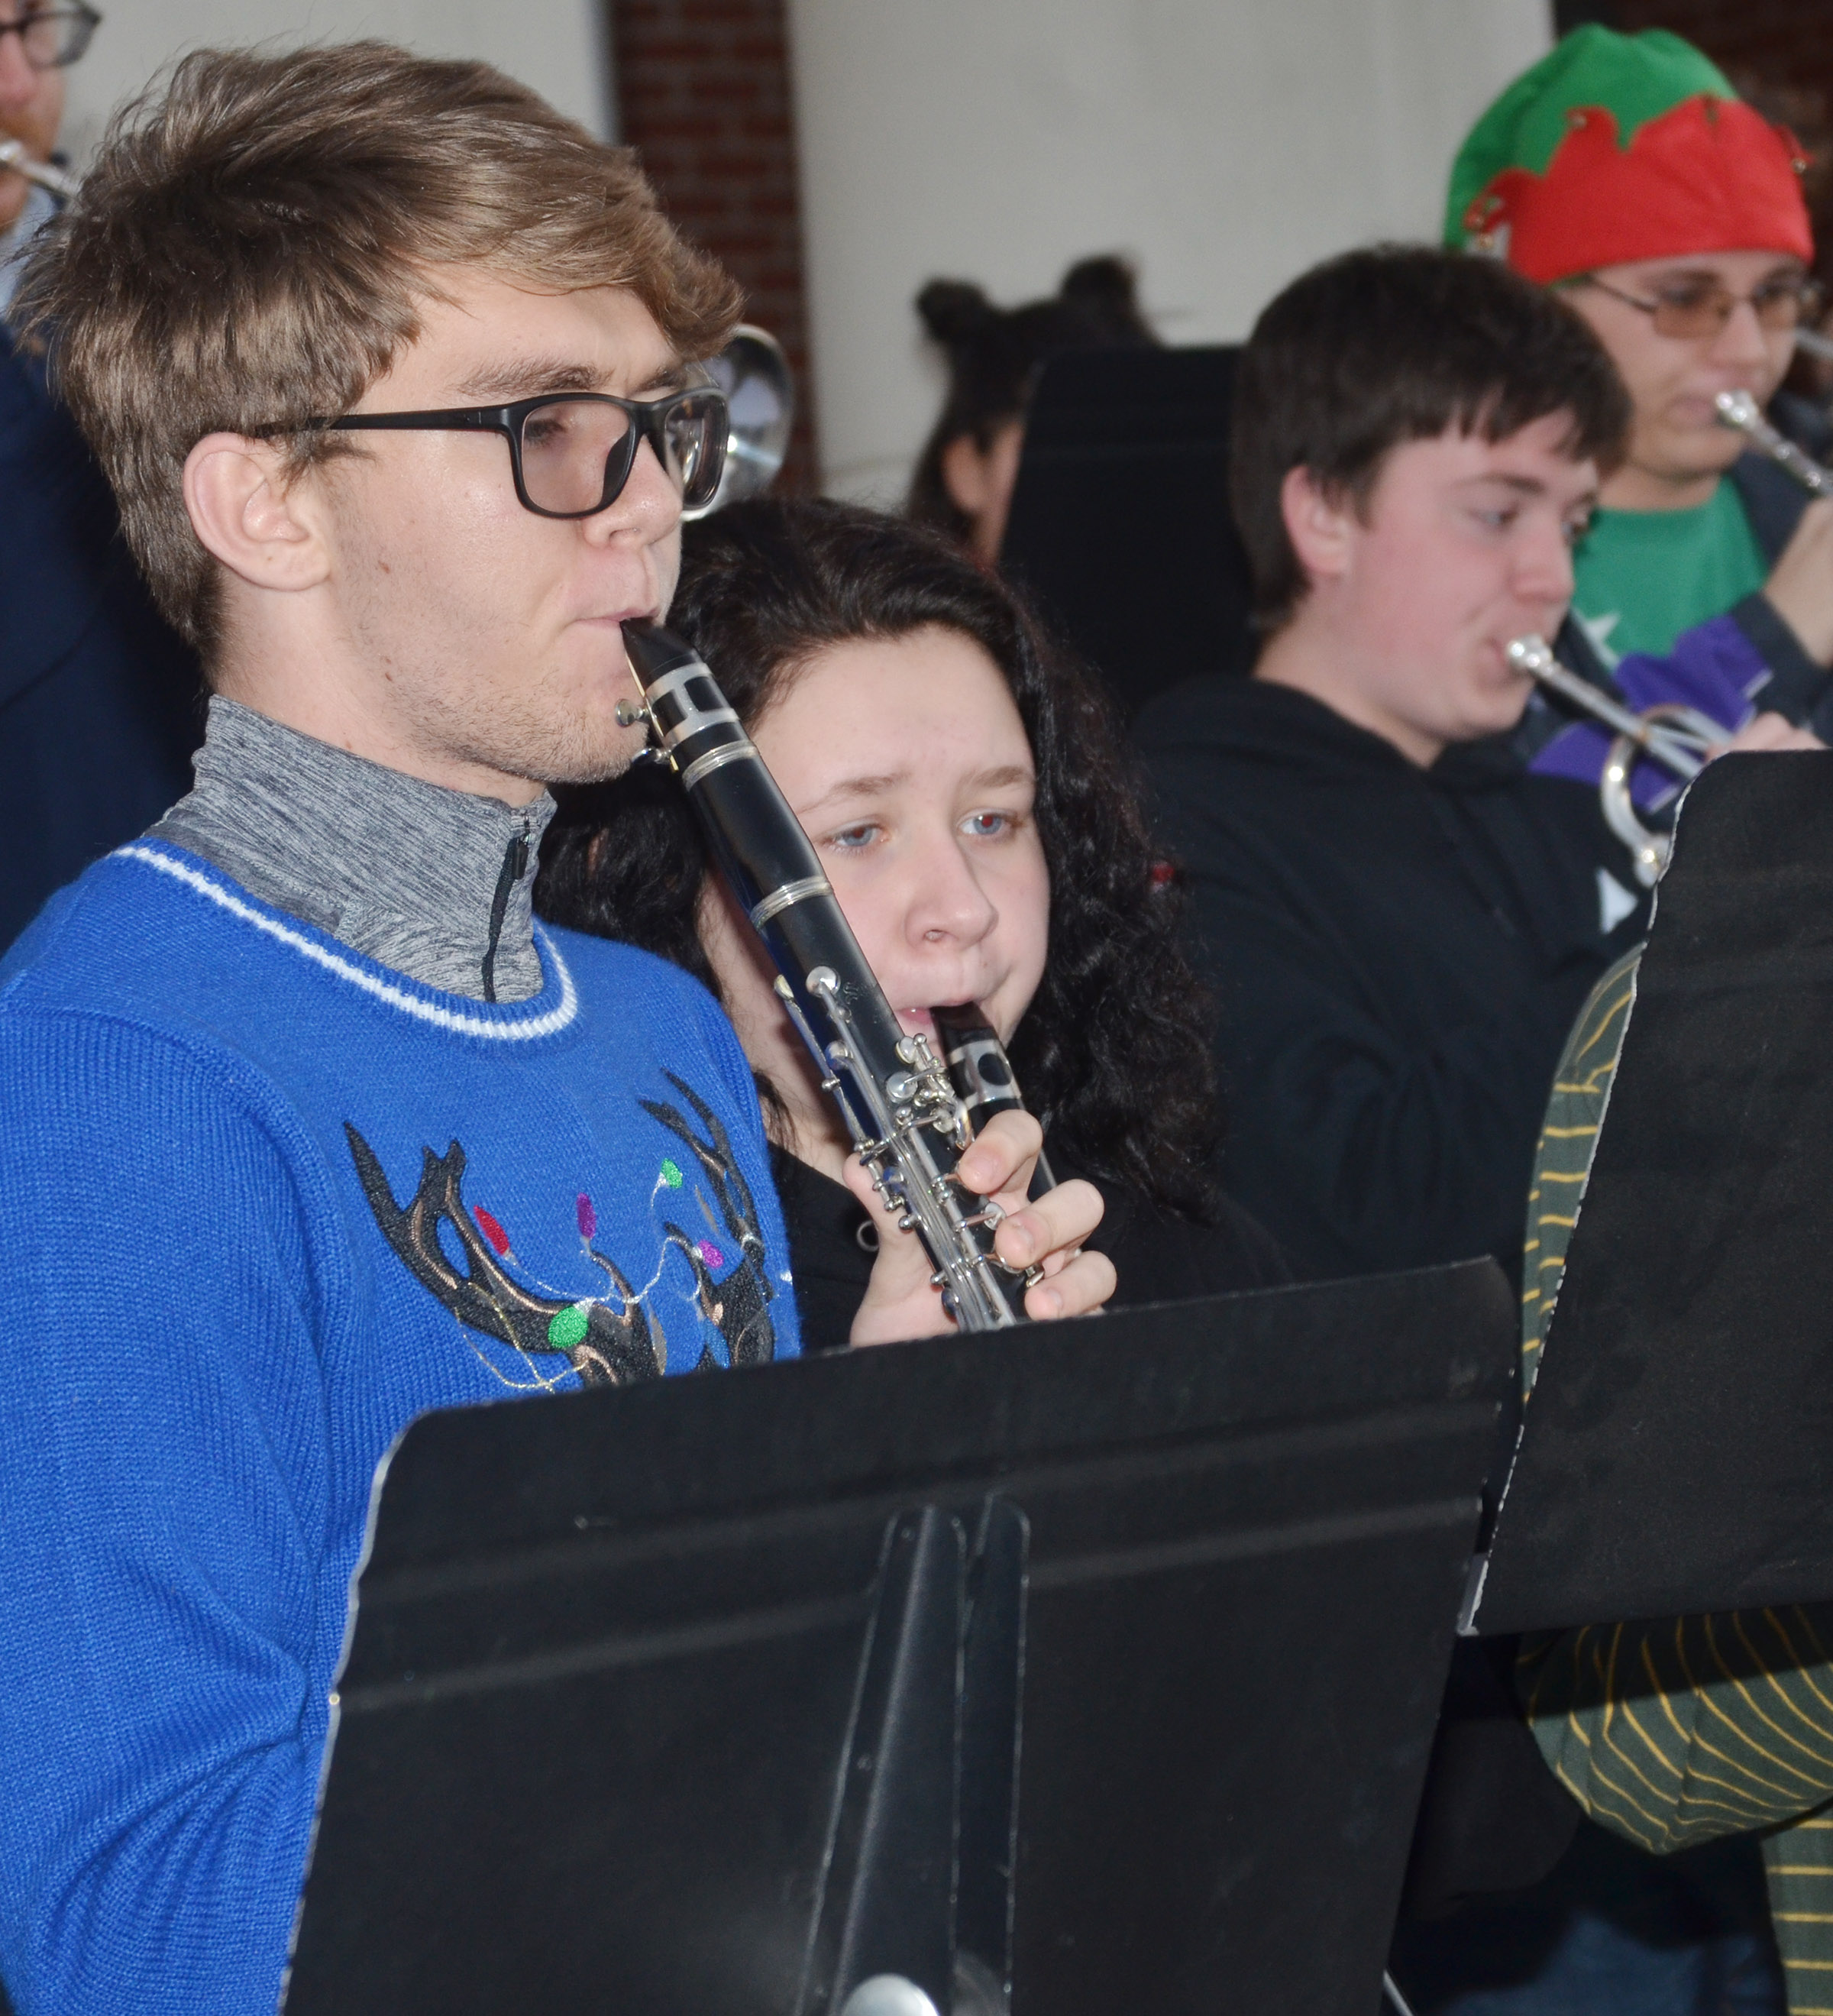 CHS senior Christian Berry plays clarinet.